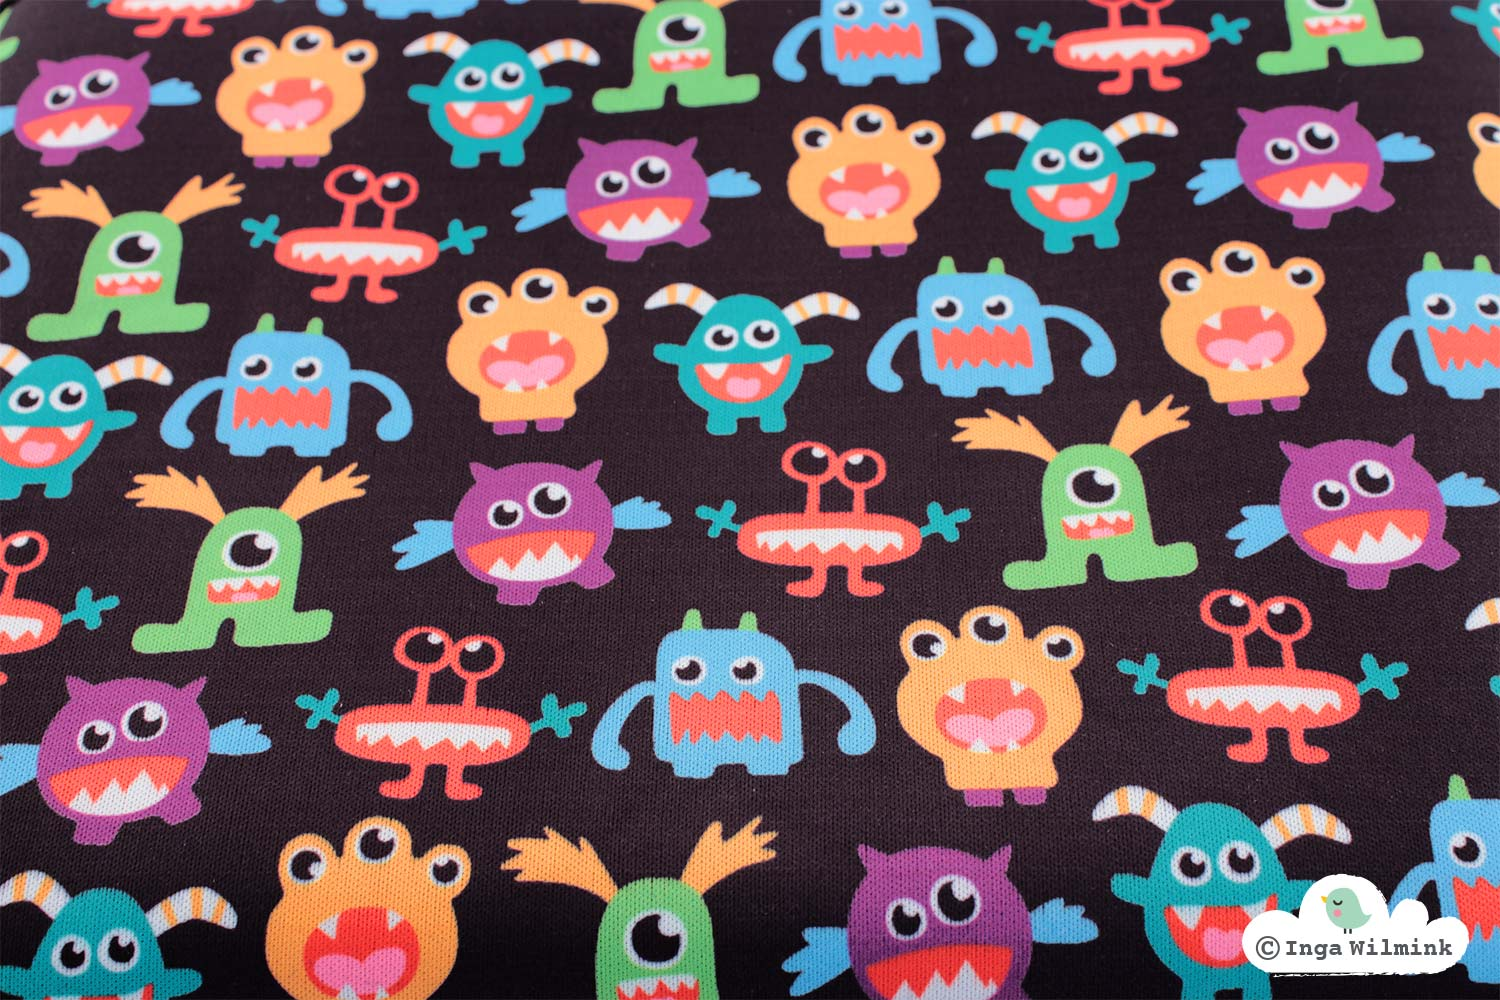 Monster Illustration - Surface Pattern Design by Inga Wilmink